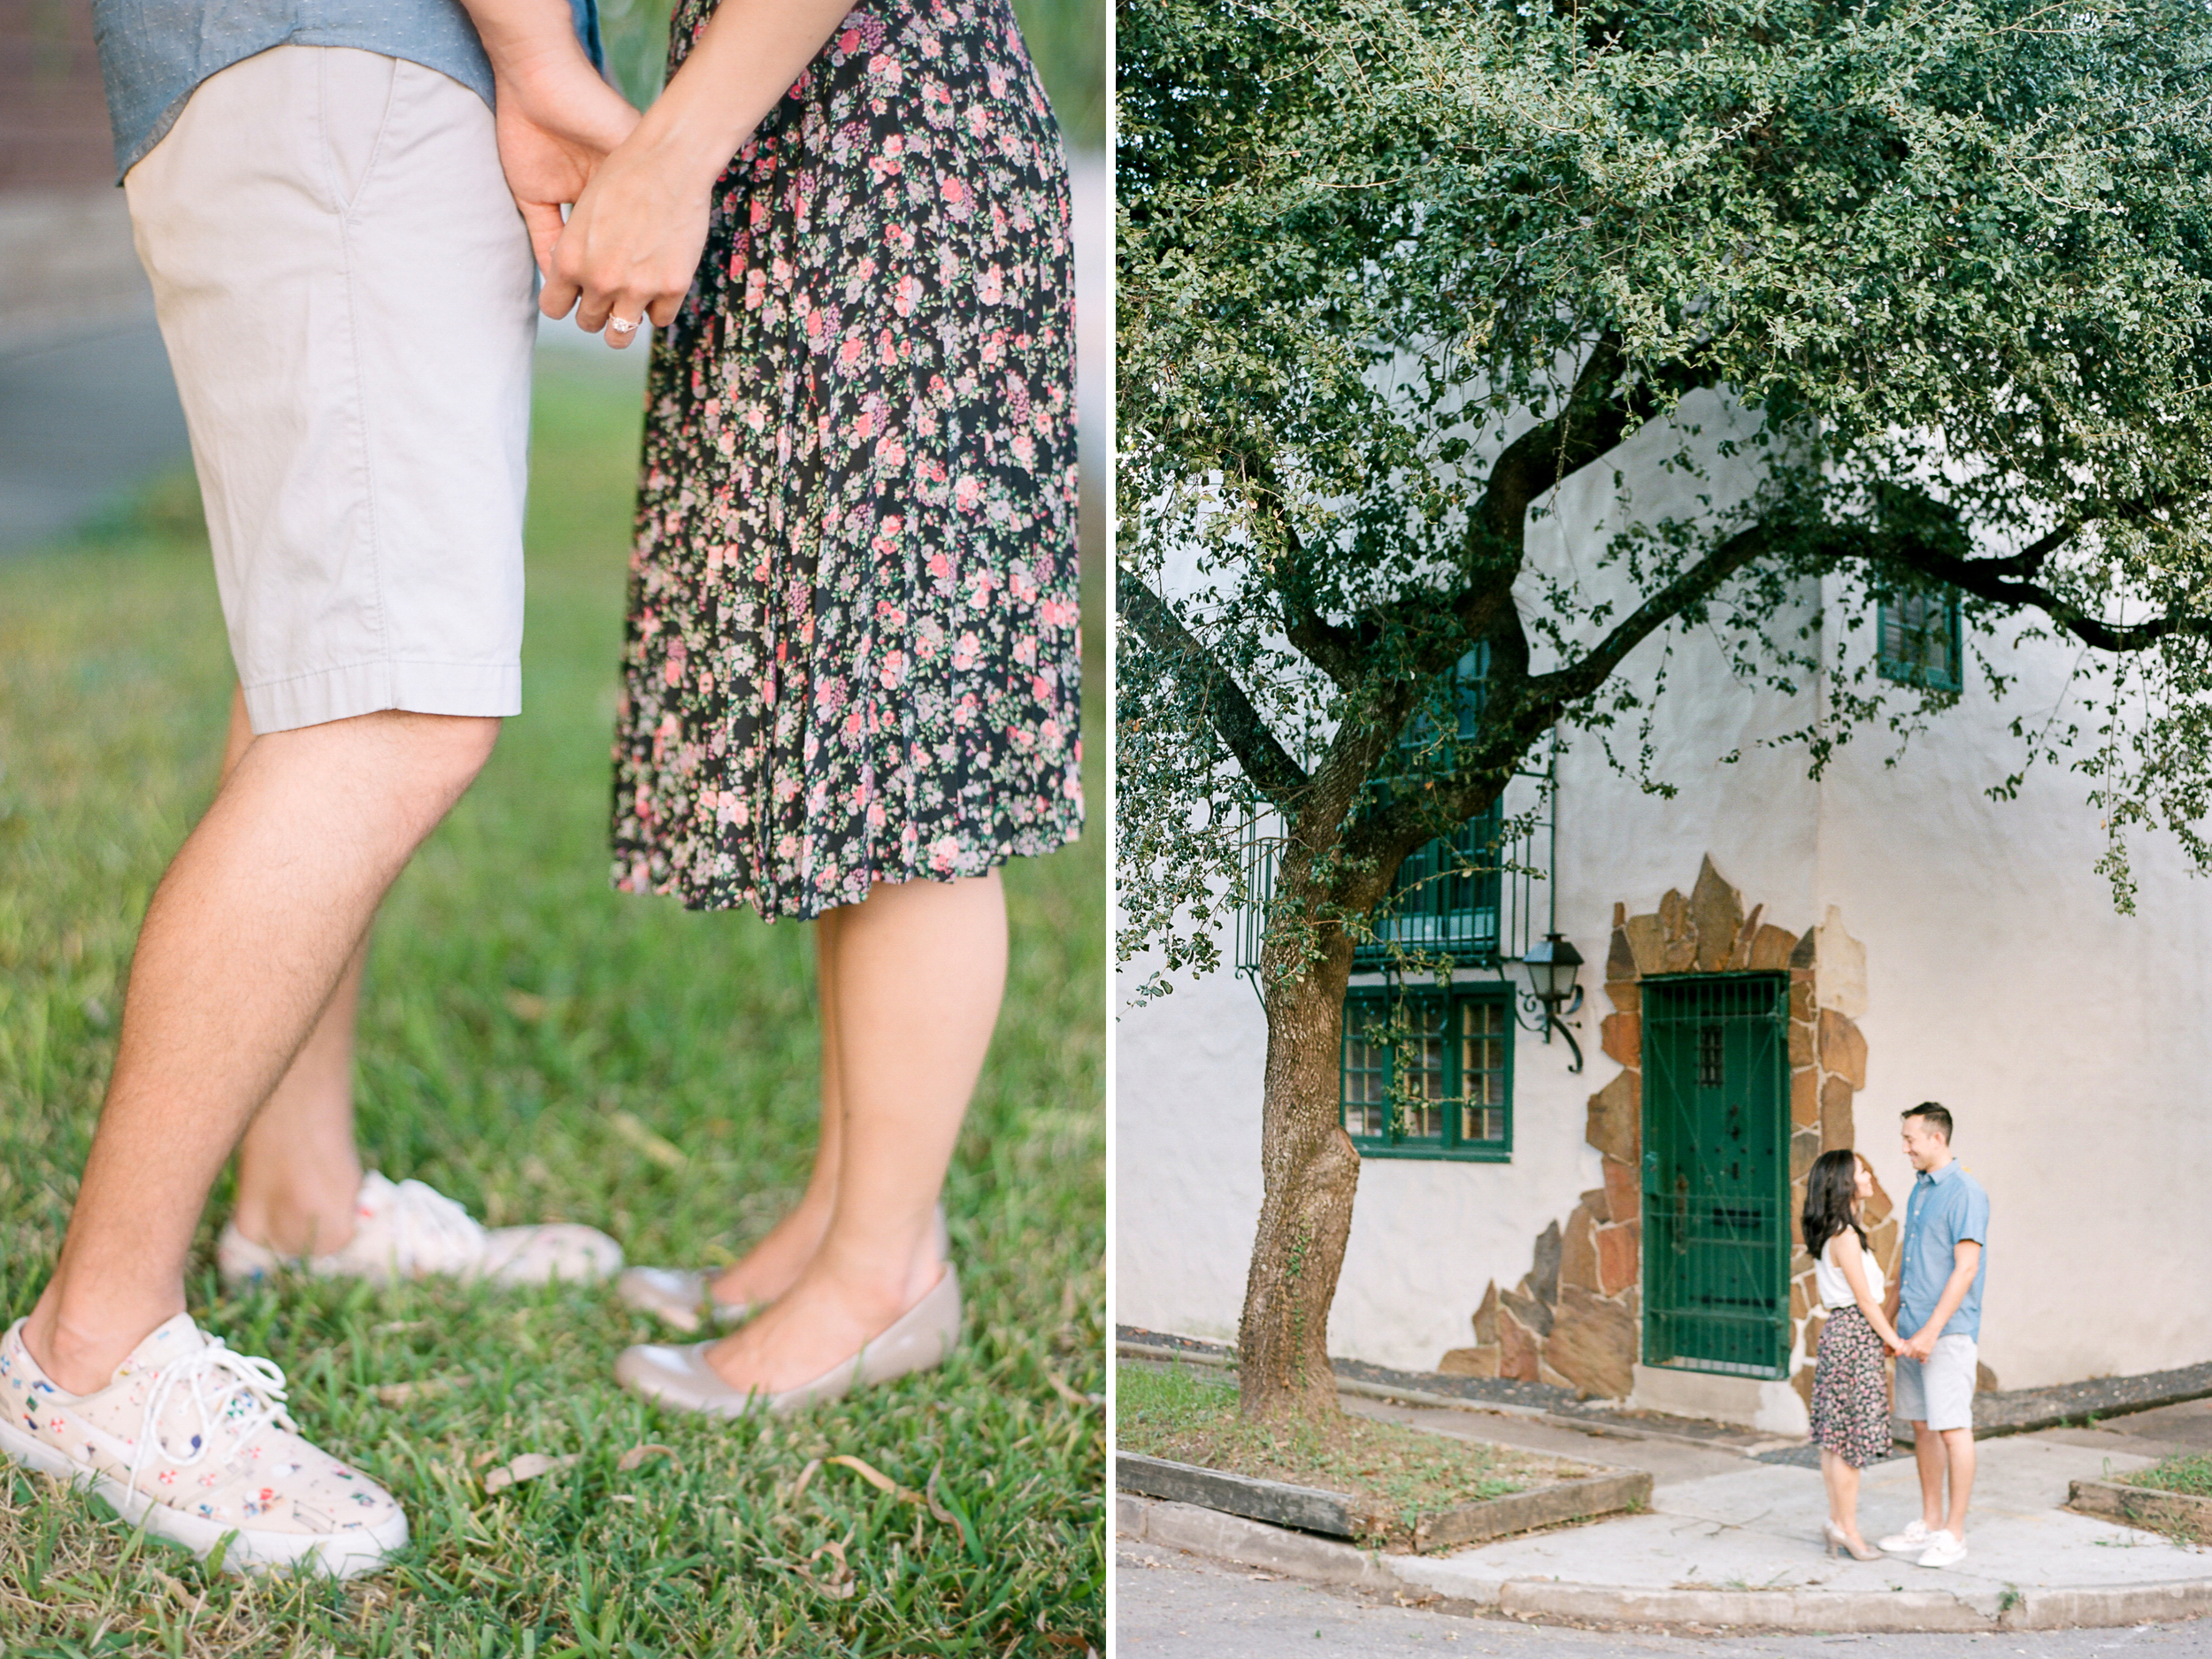 Dana-Fernandez-Photography-Houston-Wedding-Photographer-Engagements-Style-Me-Pretty-Film-Destination-Texas-10.jpg